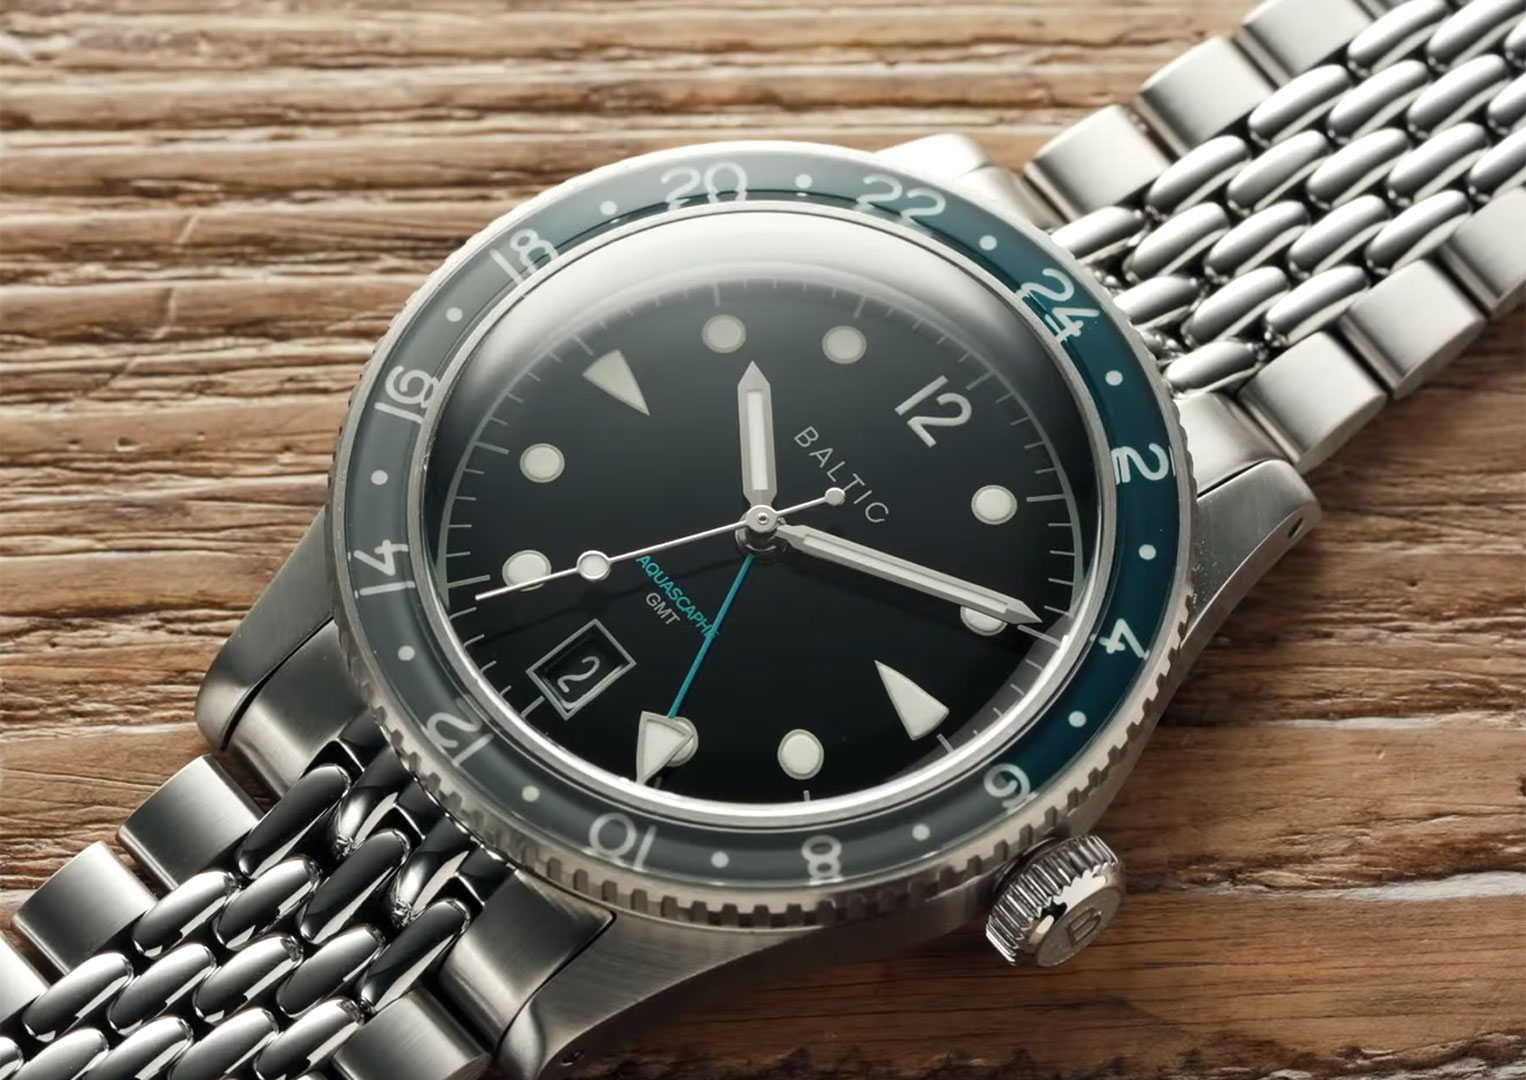 The Baltic Aquascaphe GMT will be available to customers November 27th 2020